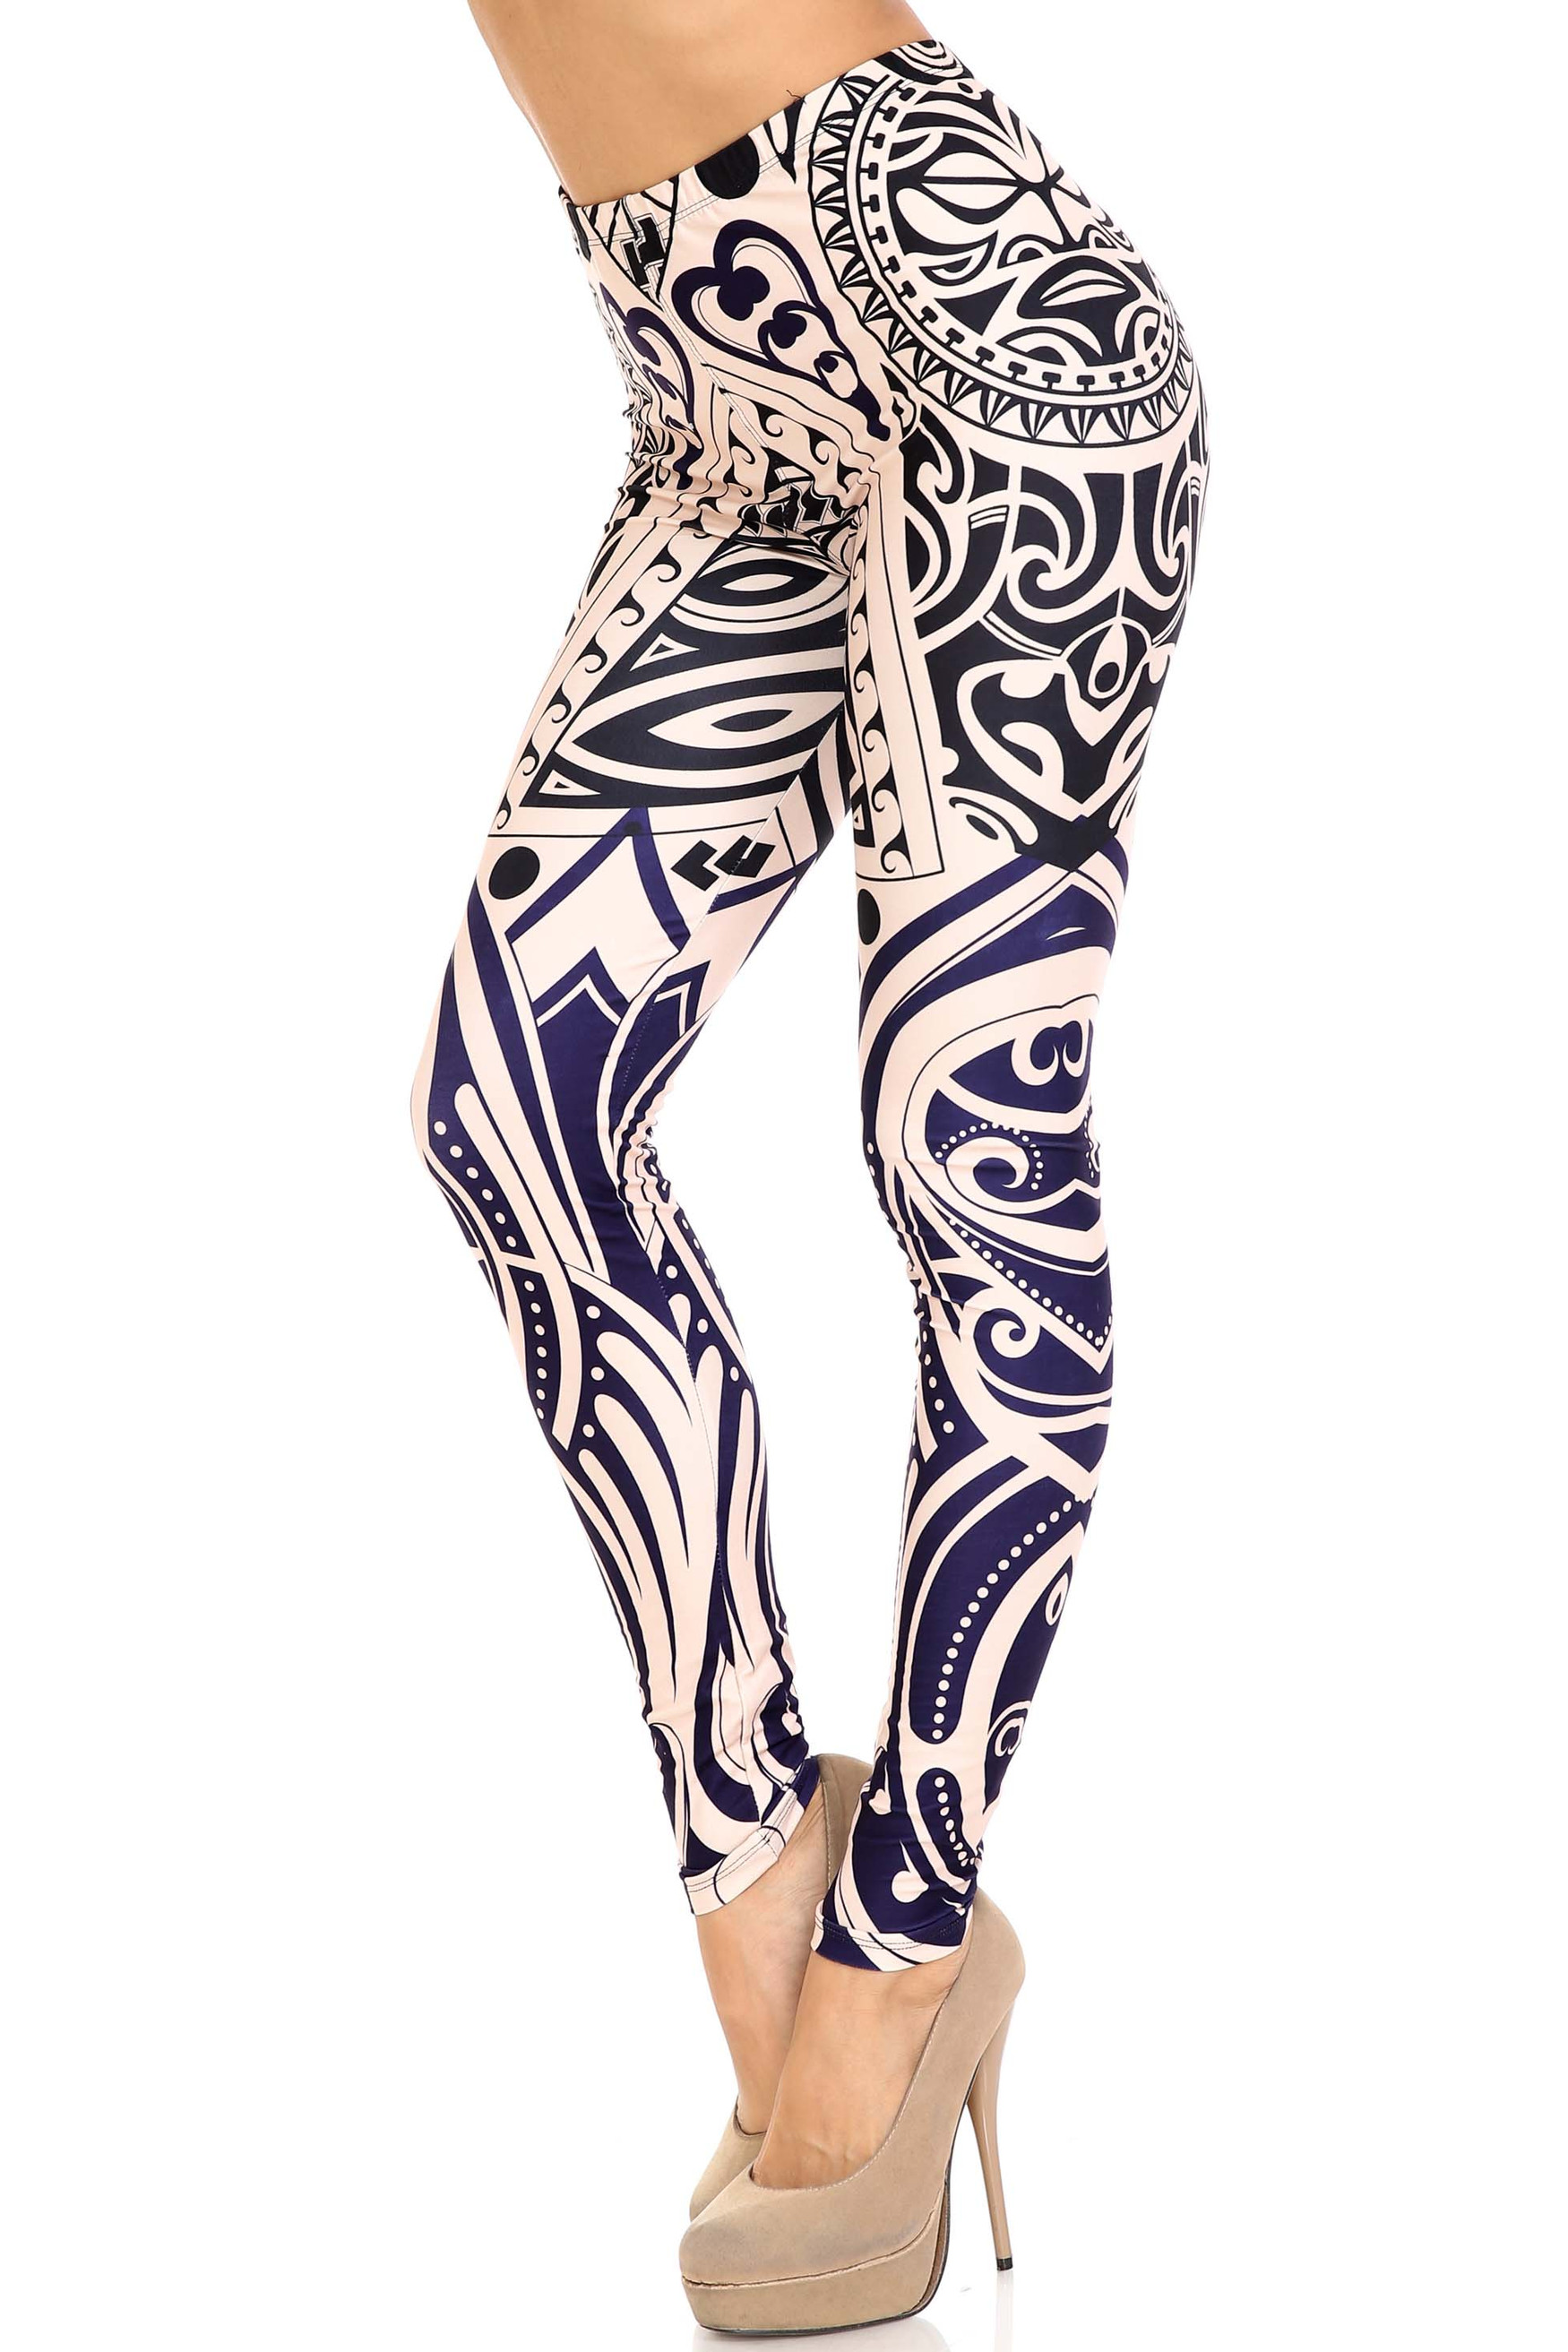 Left side right knee bent view of Creamy Soft Valhalla Extra Plus Size Leggings - 3X-5X - USA Fashion™ with an amazing bold navy and black on white design inspired by ancient art.